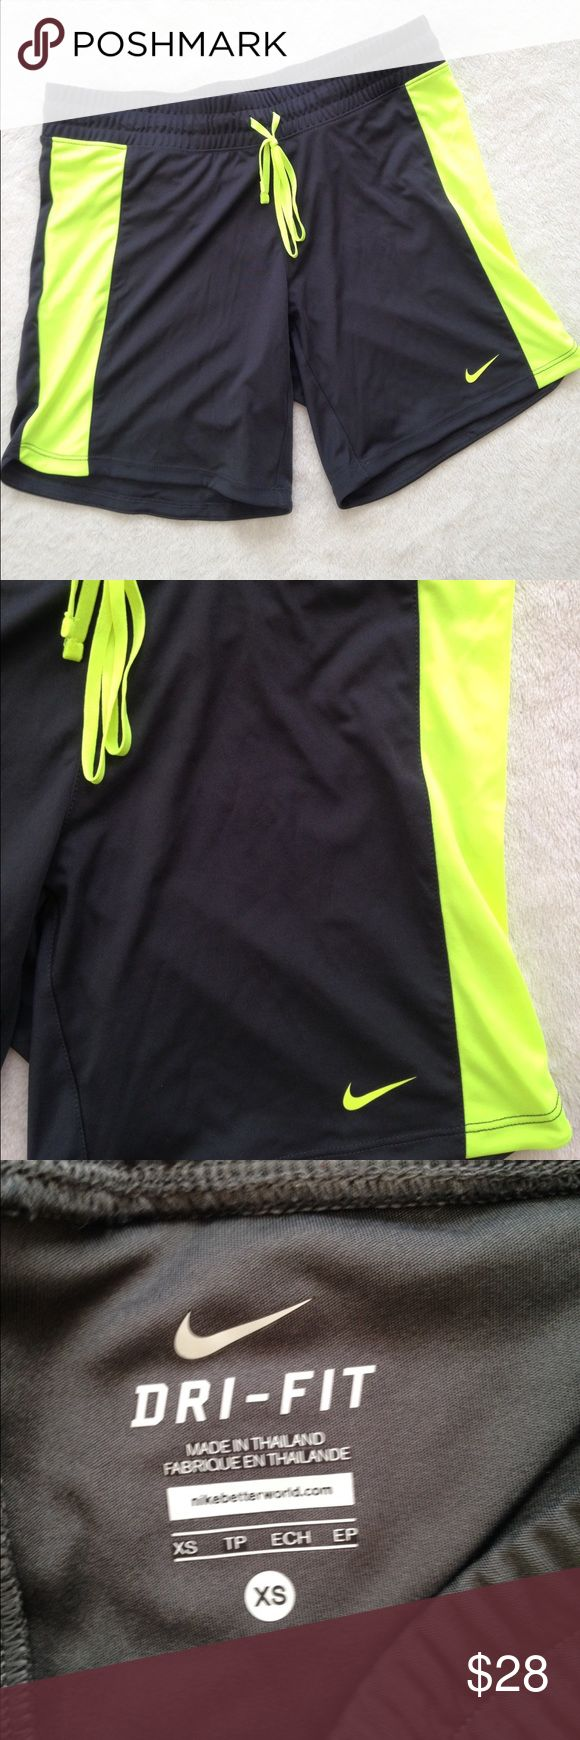 BRAND NEW WITHOUT TAGS!! Nike dri fit shorts Never worn super cute Nike shorts!! Nike Shorts